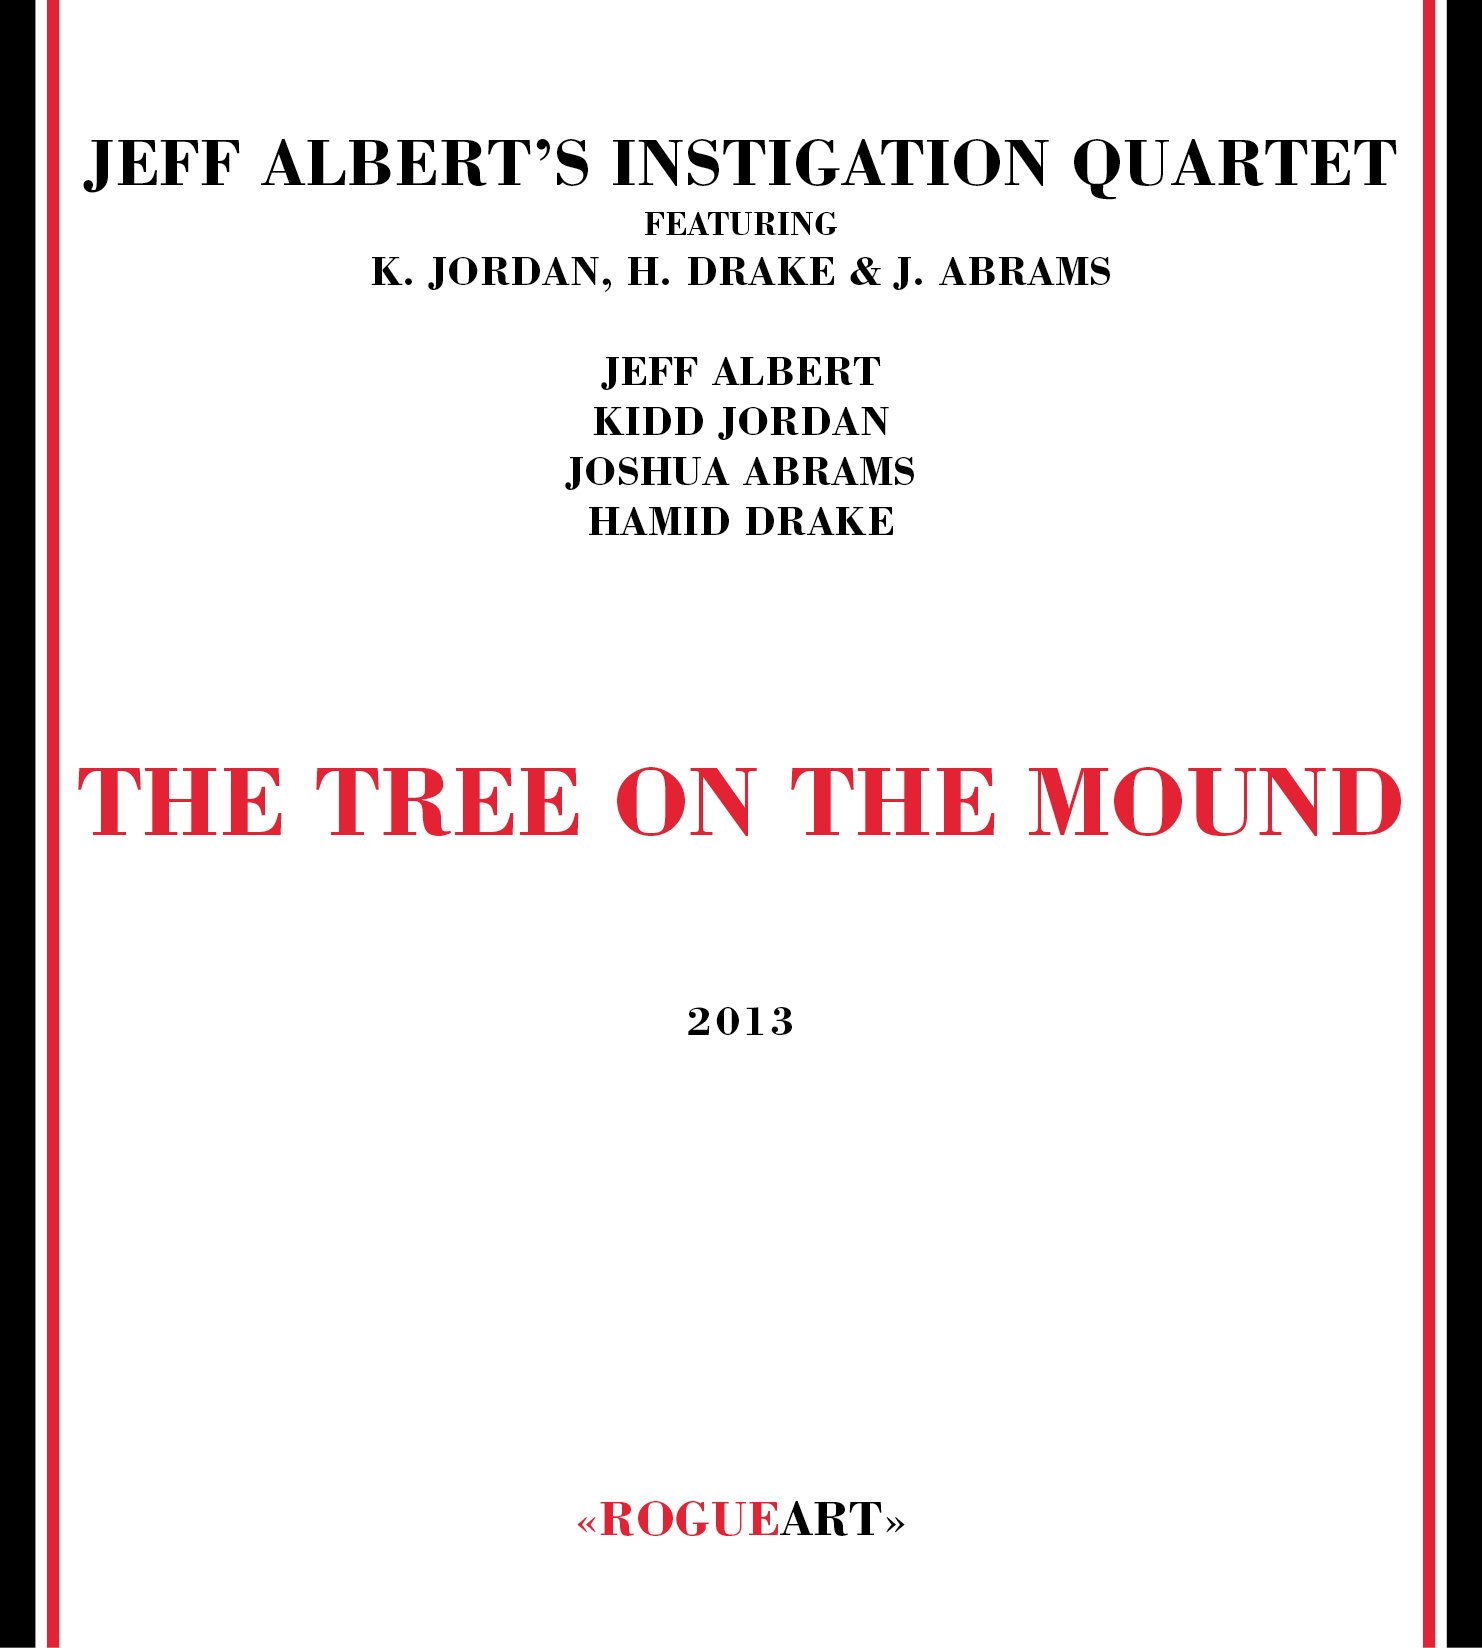 Front cover of the album THE TREE ON THE MOUND